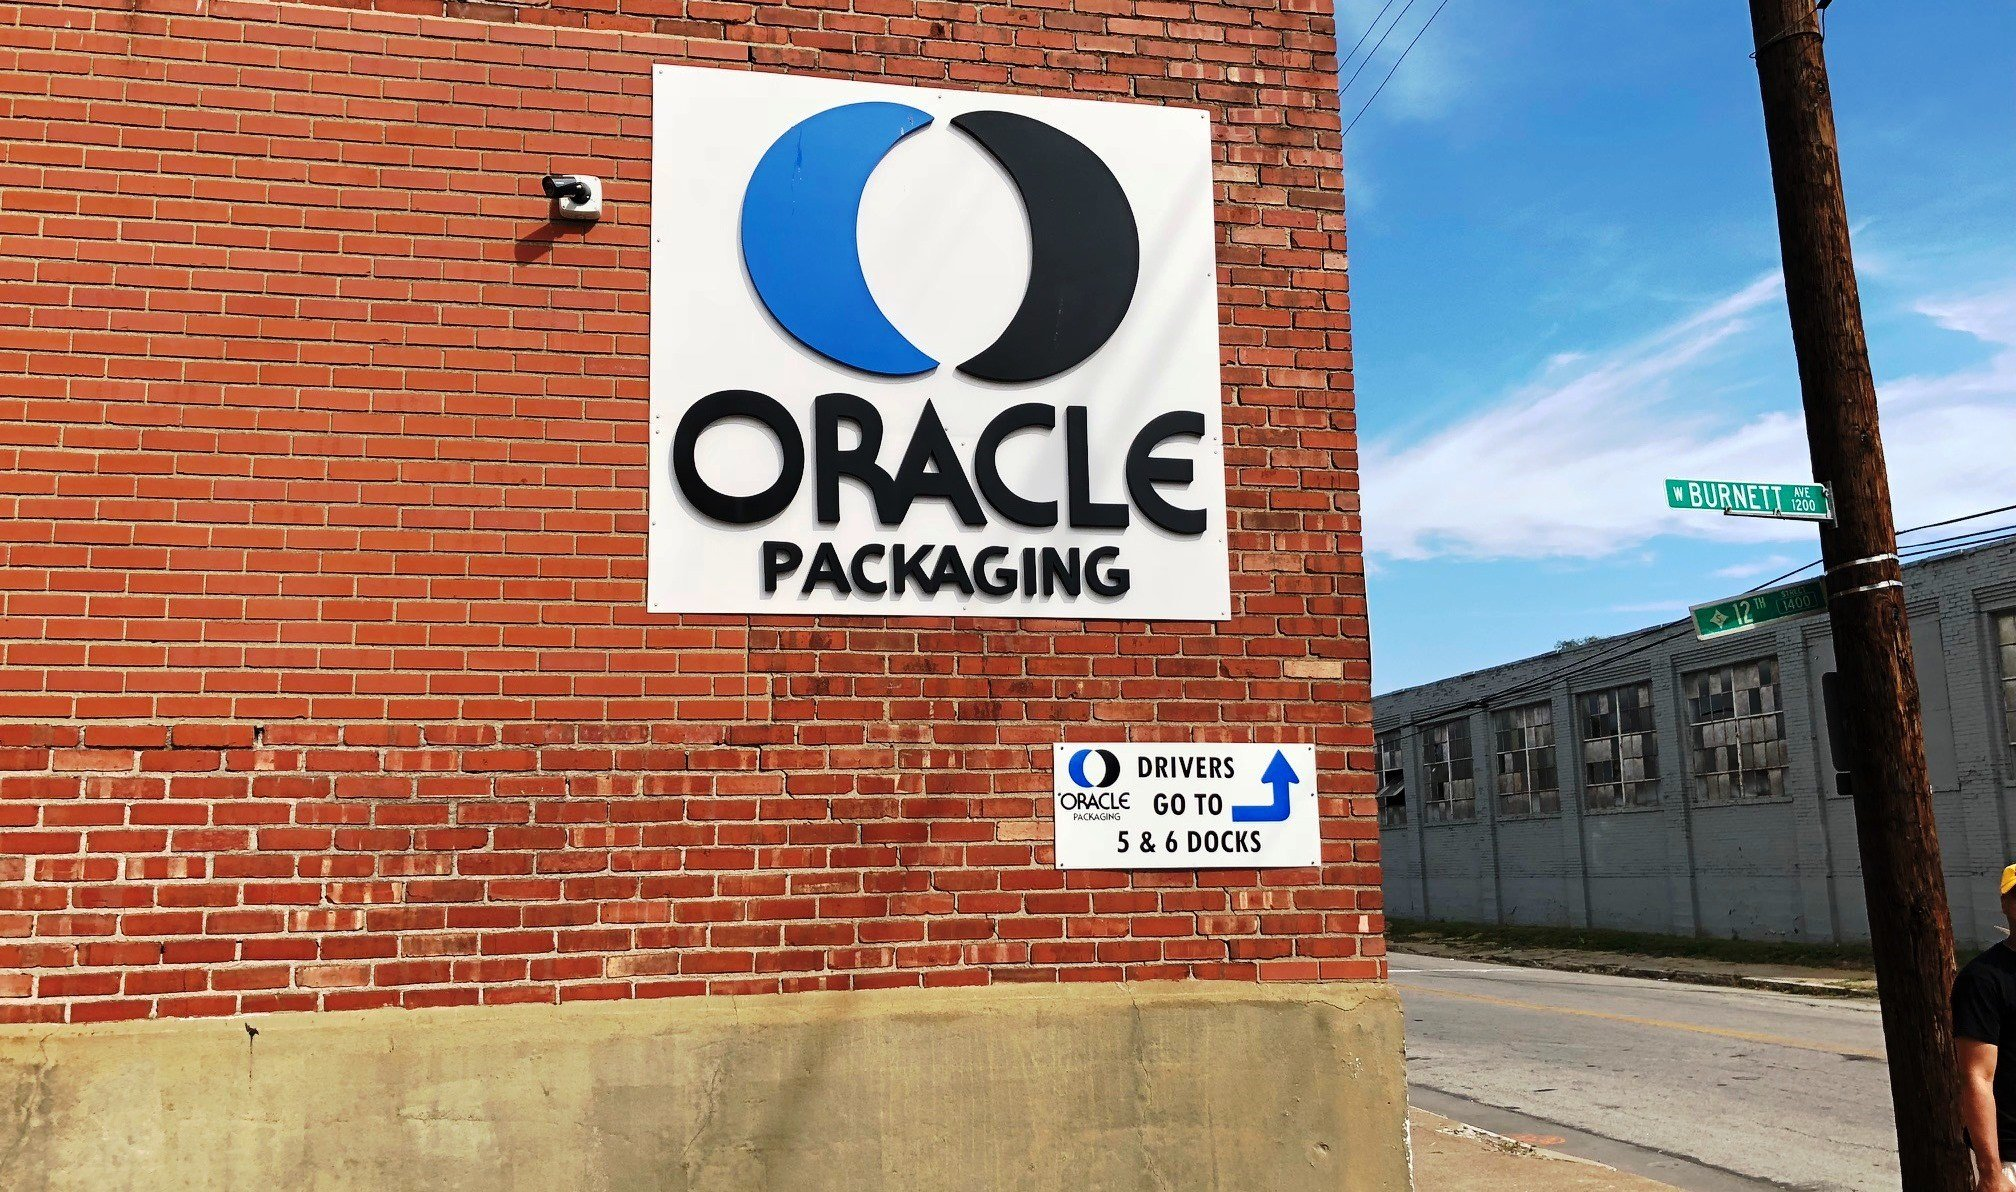 Oracle Packaging makes cigarette foil, among other products